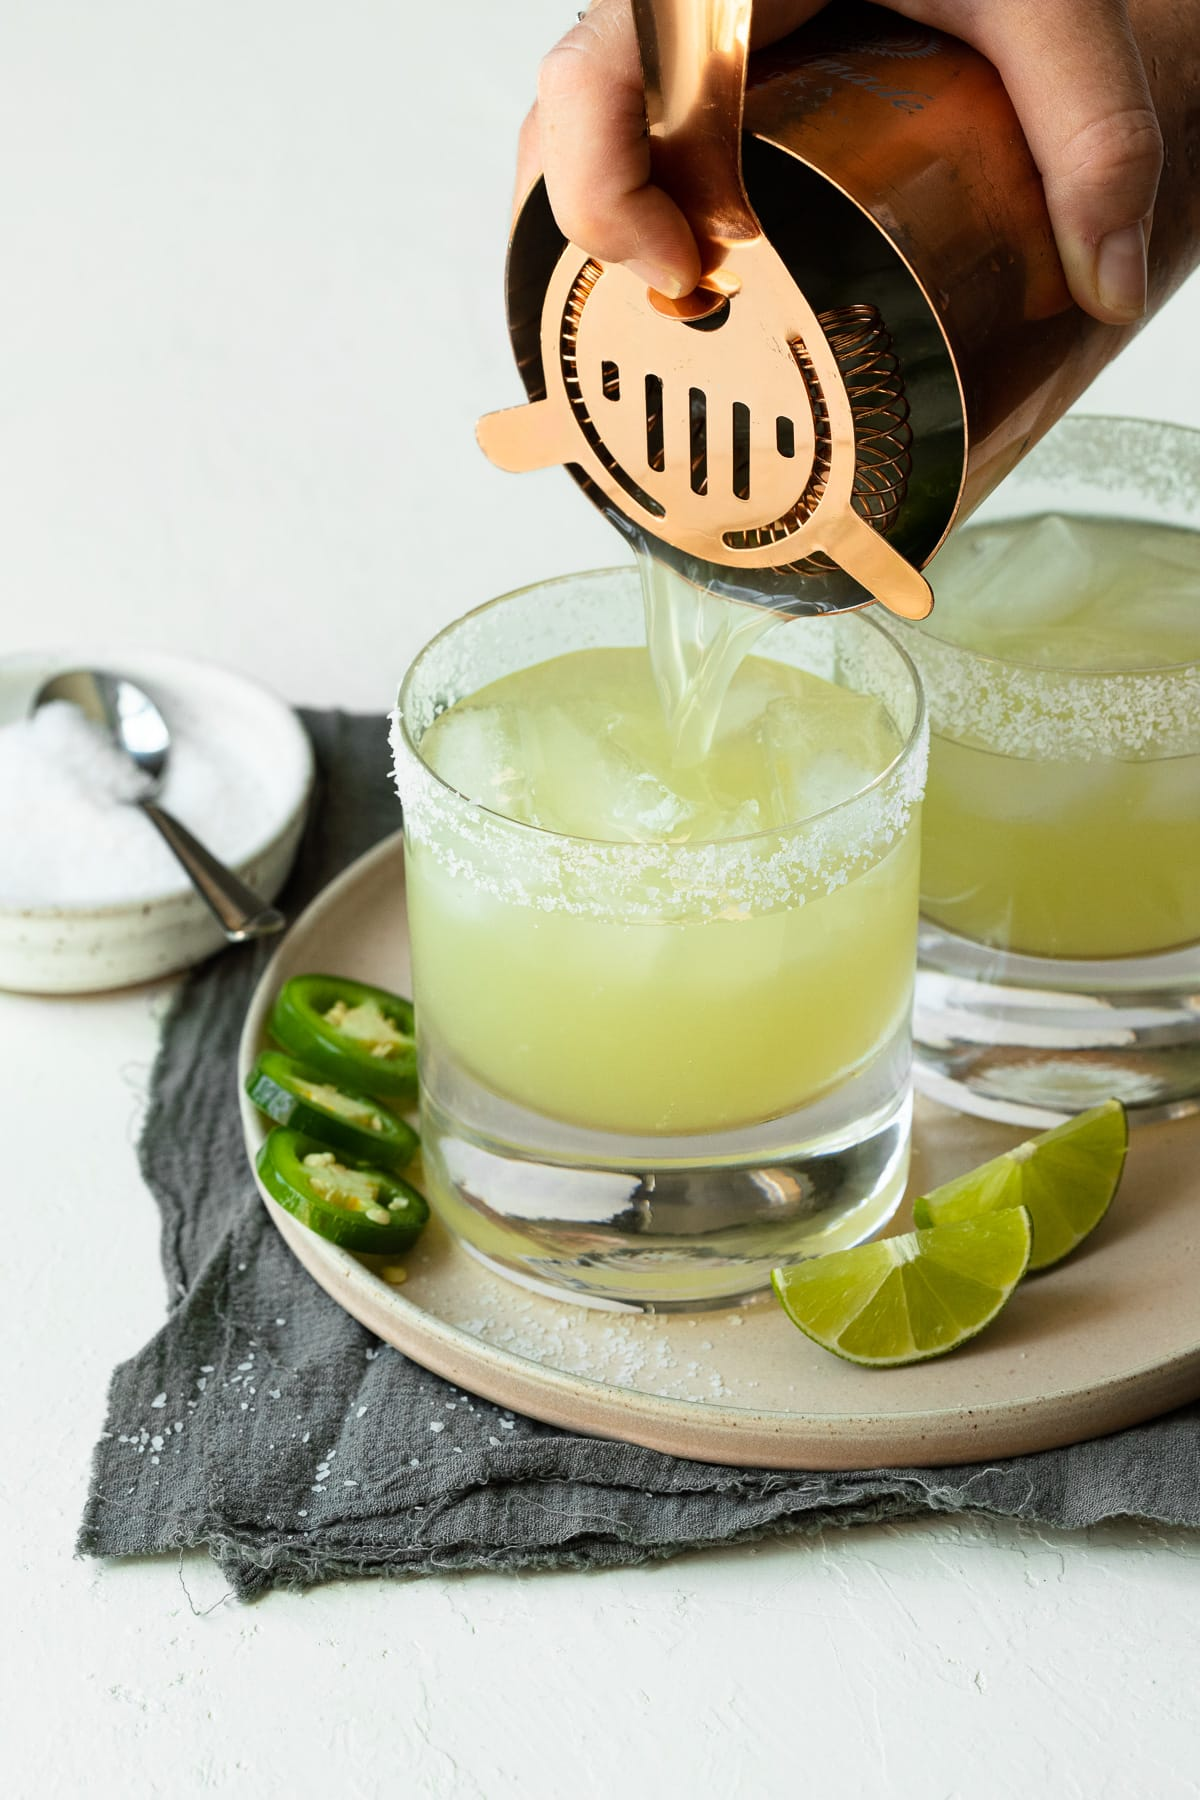 Margarita being poured into a lowball glass over ice.